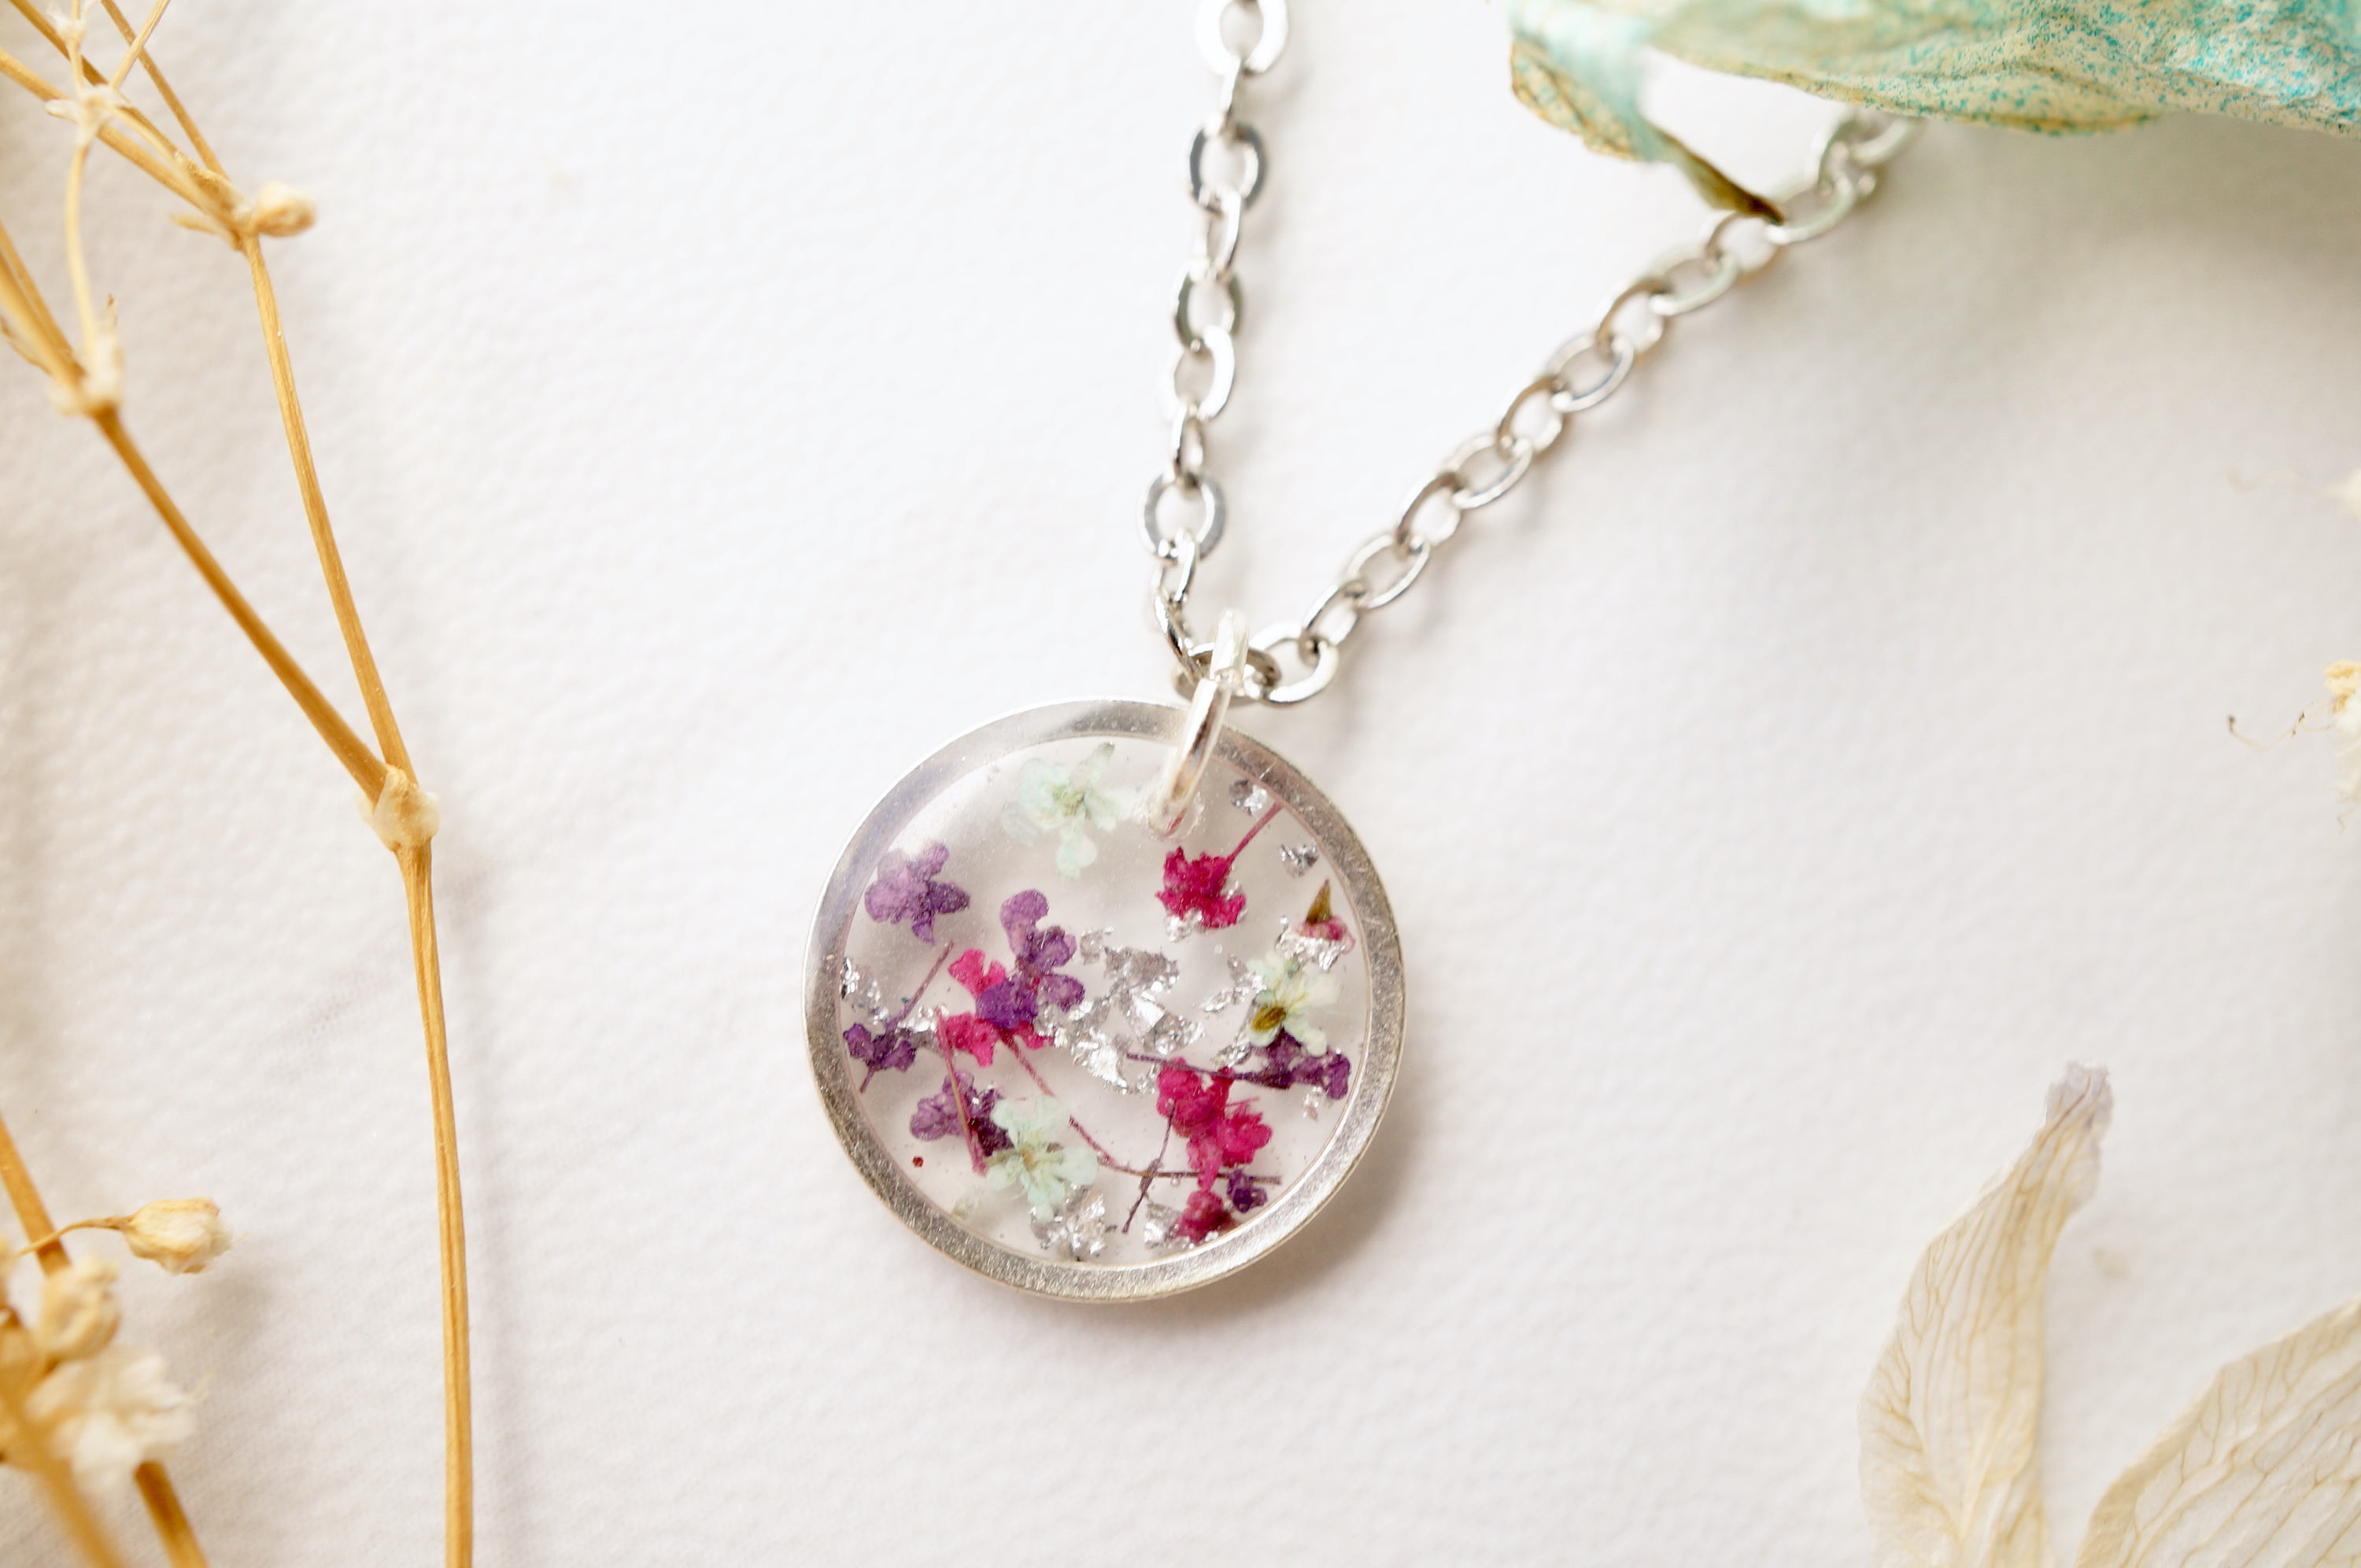 Small floral resin pendant necklace